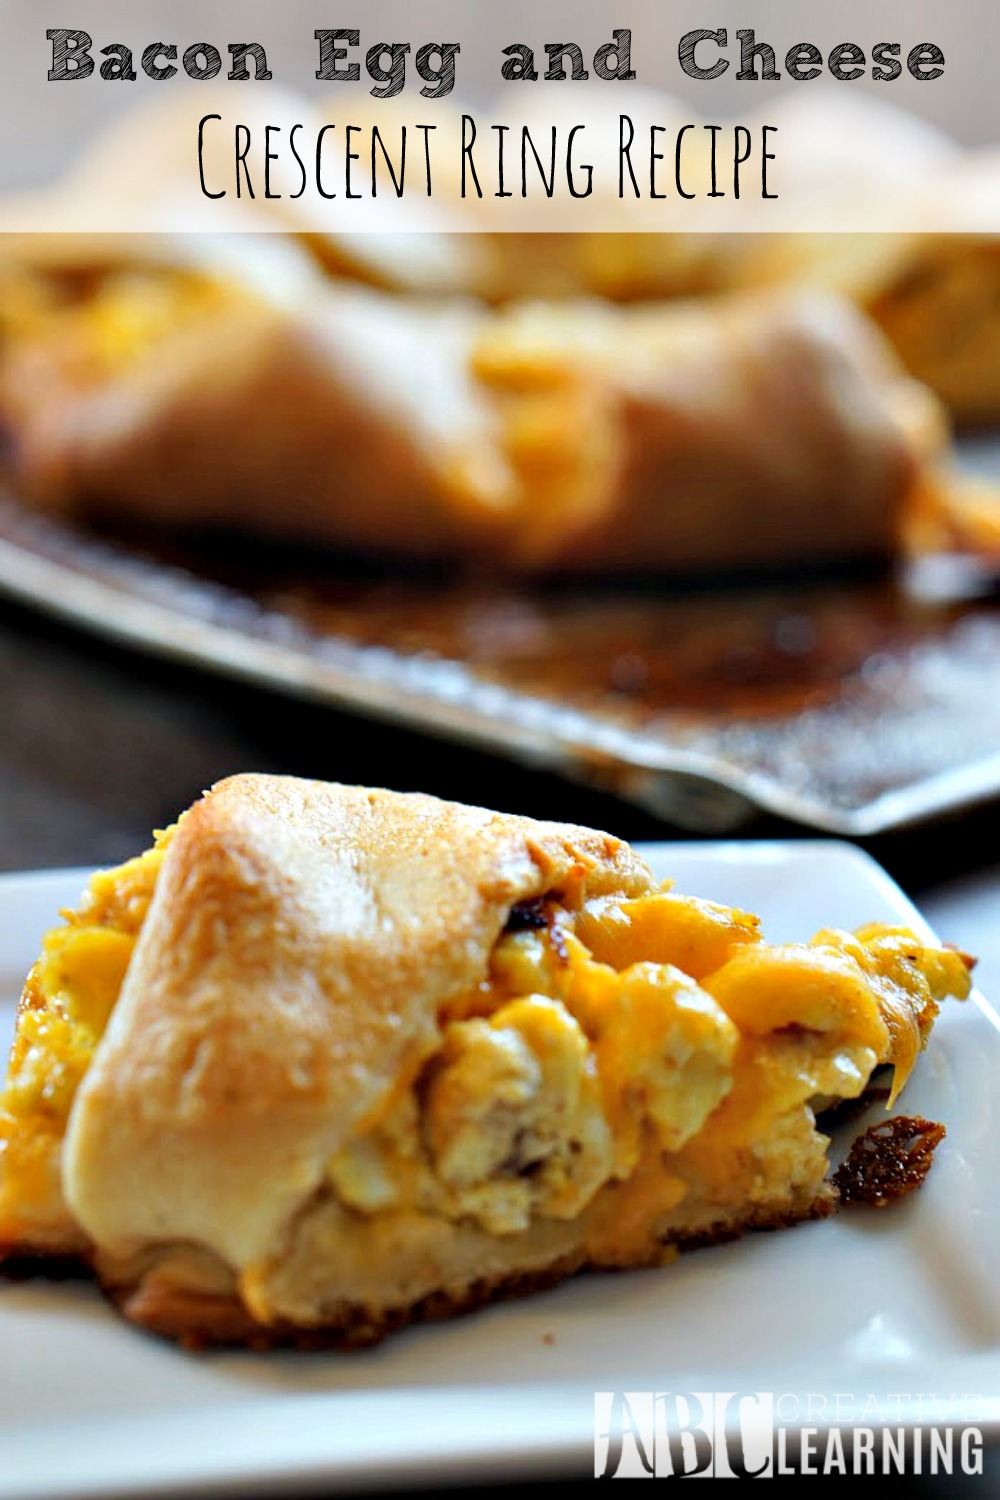 Bacon, Egg, and Cheese Crescent Ring Recipe